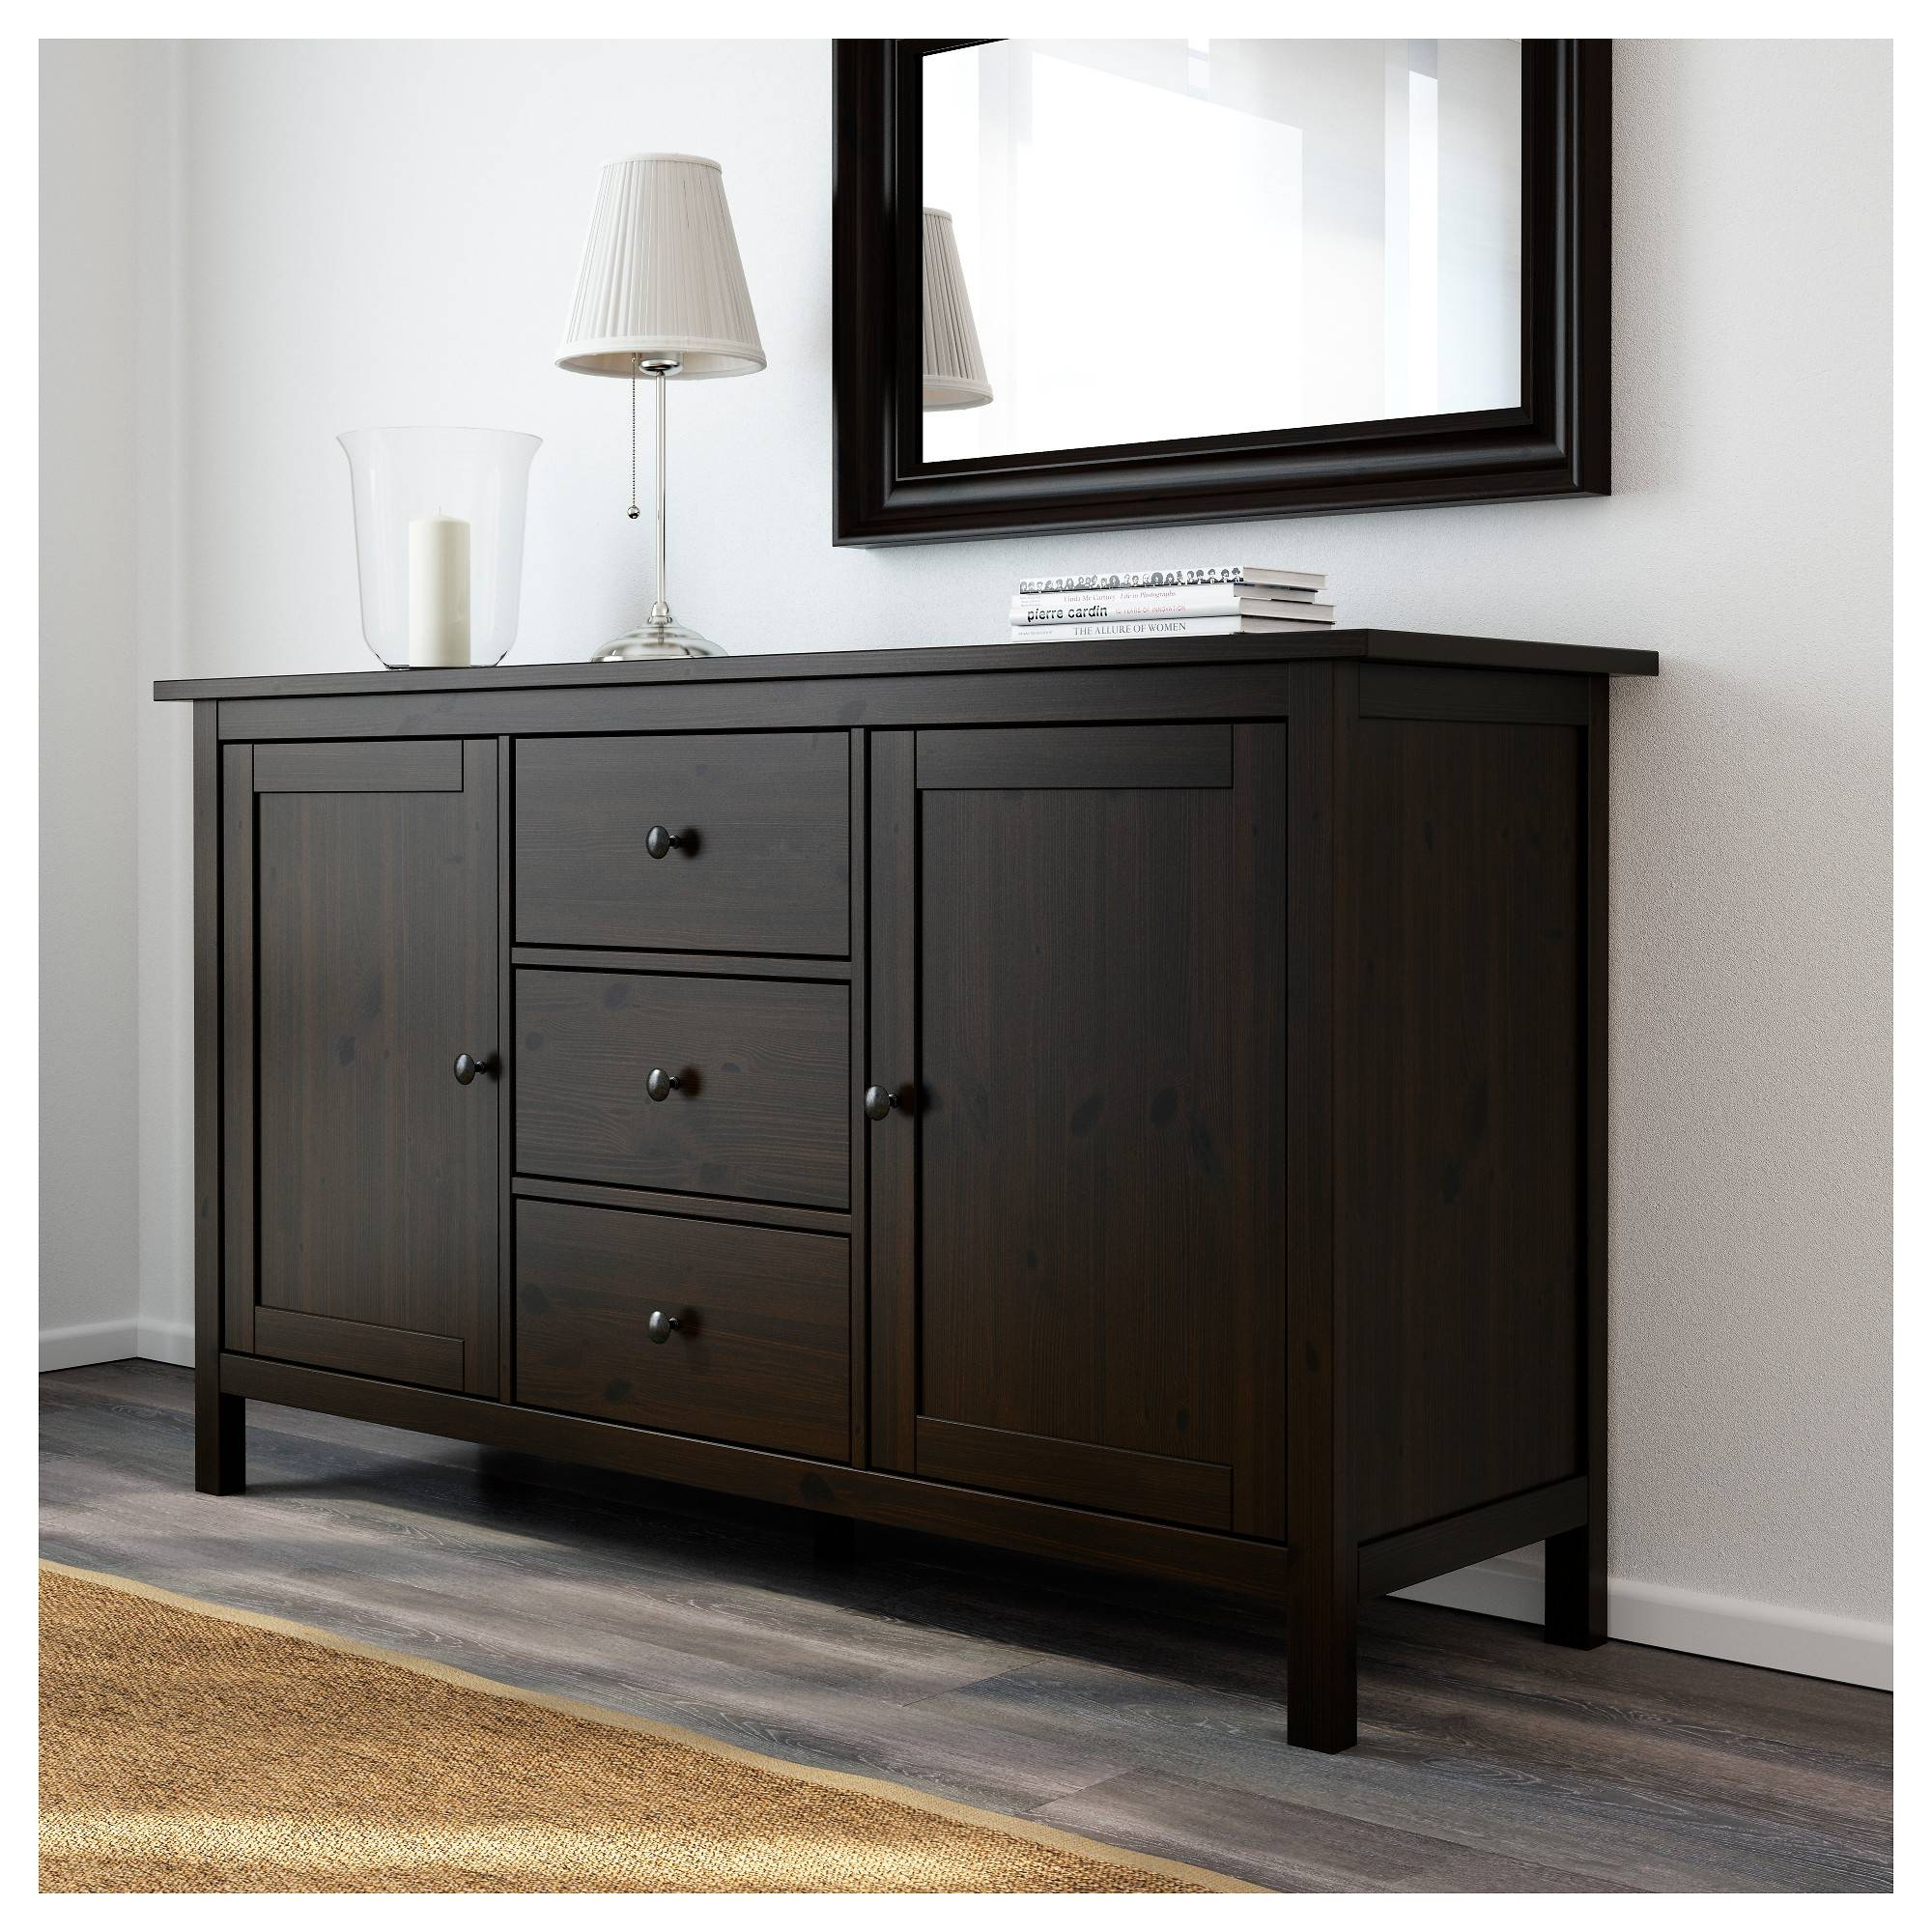 Hemnes Sideboard - White Stain - Ikea inside Sideboard Buffet Furniture (Image 11 of 15)